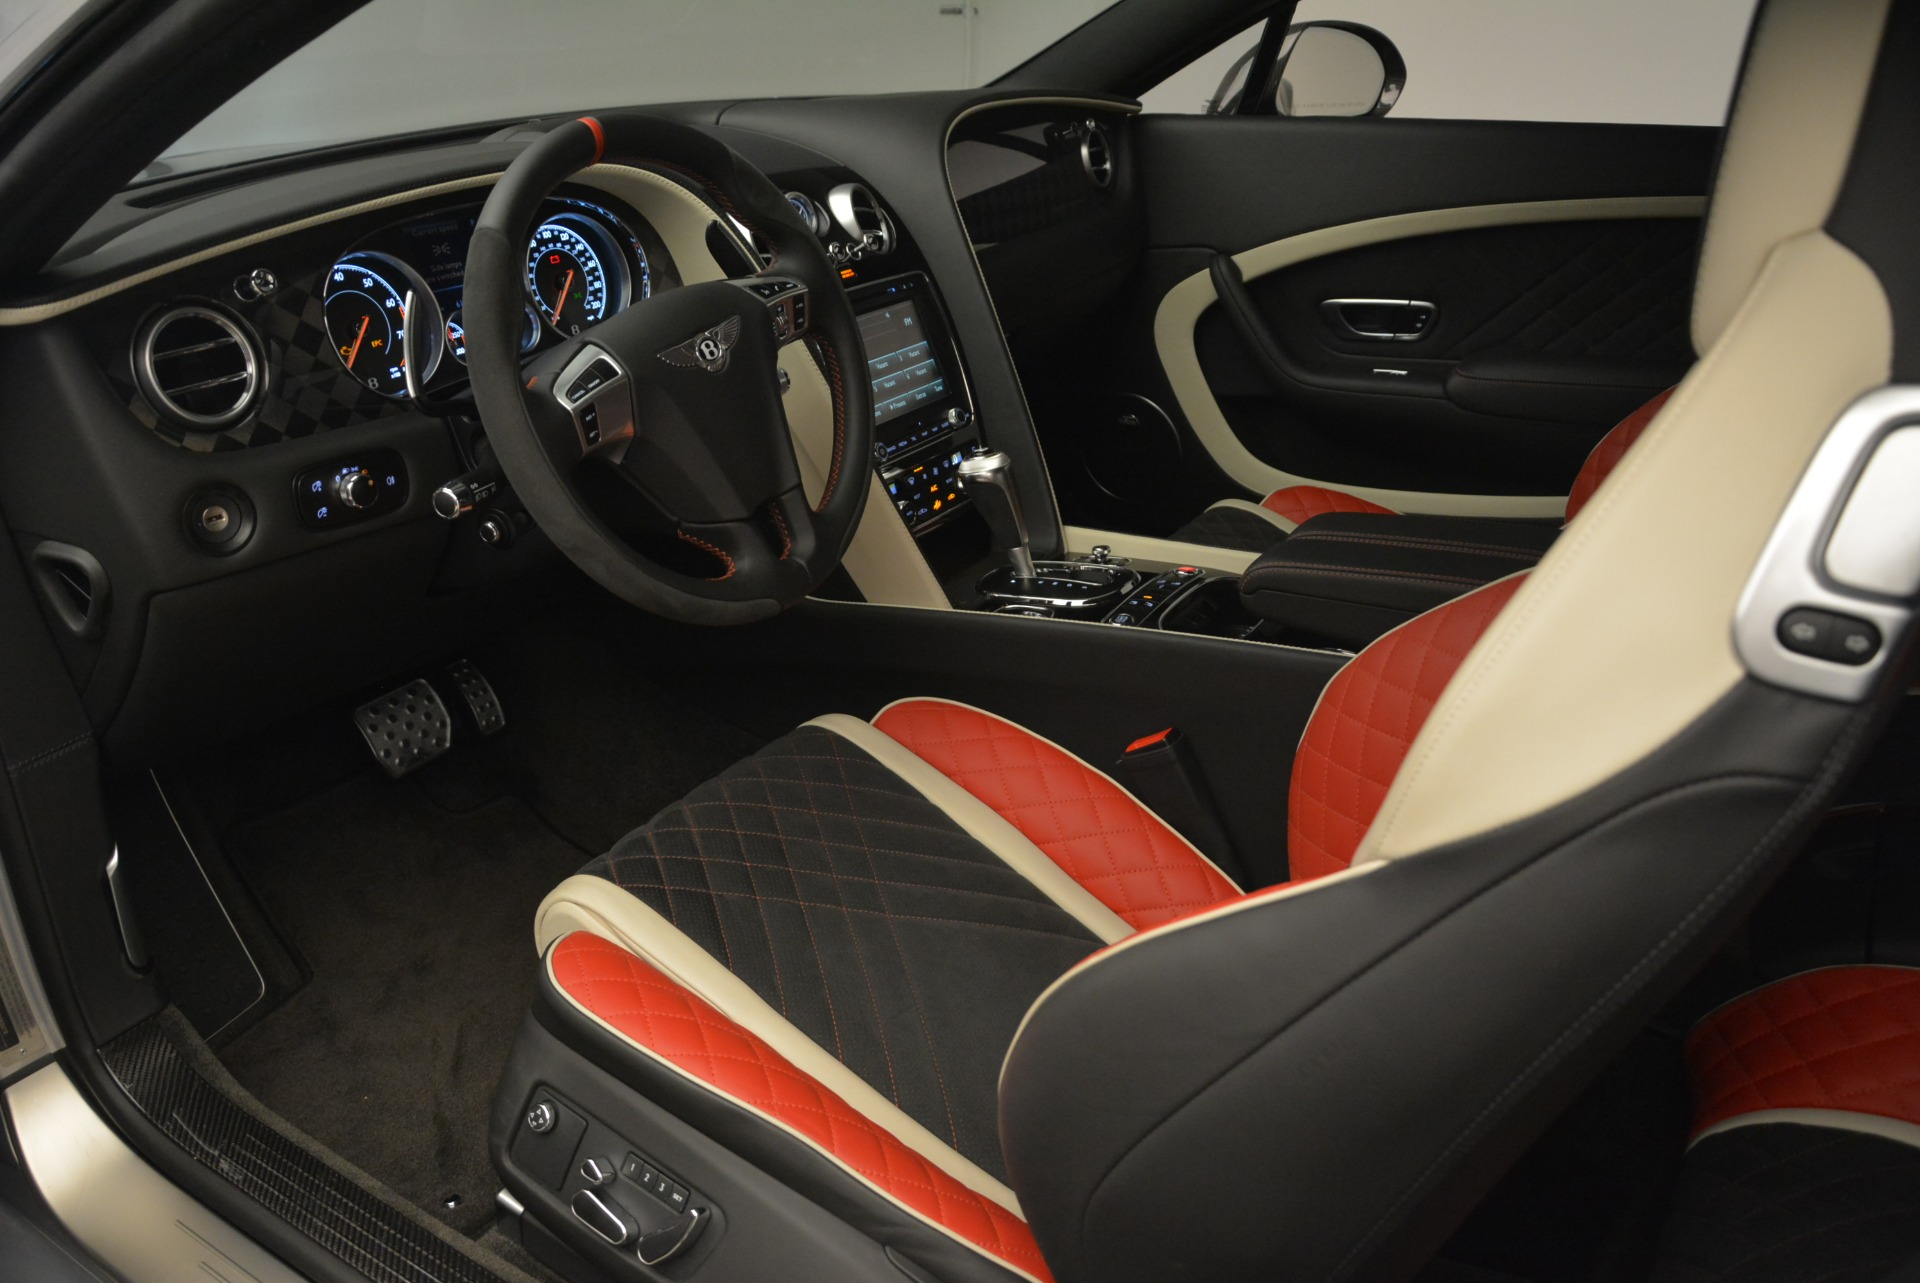 Used 2017 Bentley Continental GT Supersports For Sale In Westport, CT 2206_p19